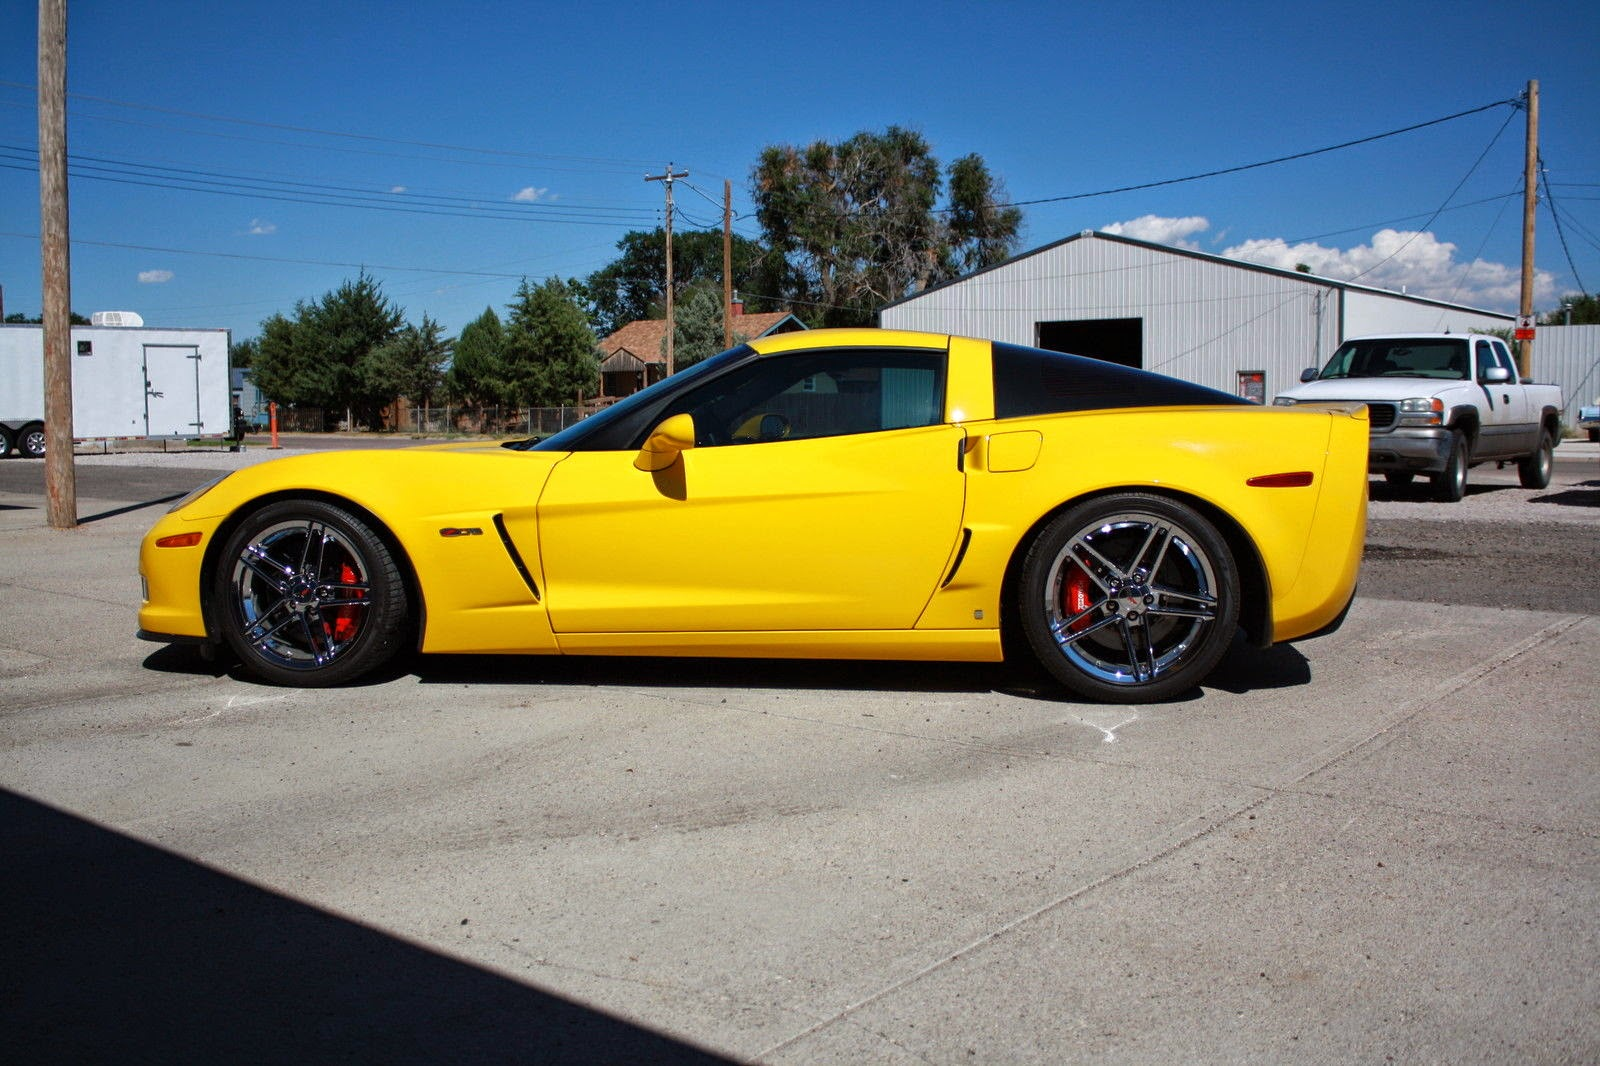 2008 chevrolet corvette z06 coupe 2 door 7 0l for sale american muscle cars. Black Bedroom Furniture Sets. Home Design Ideas